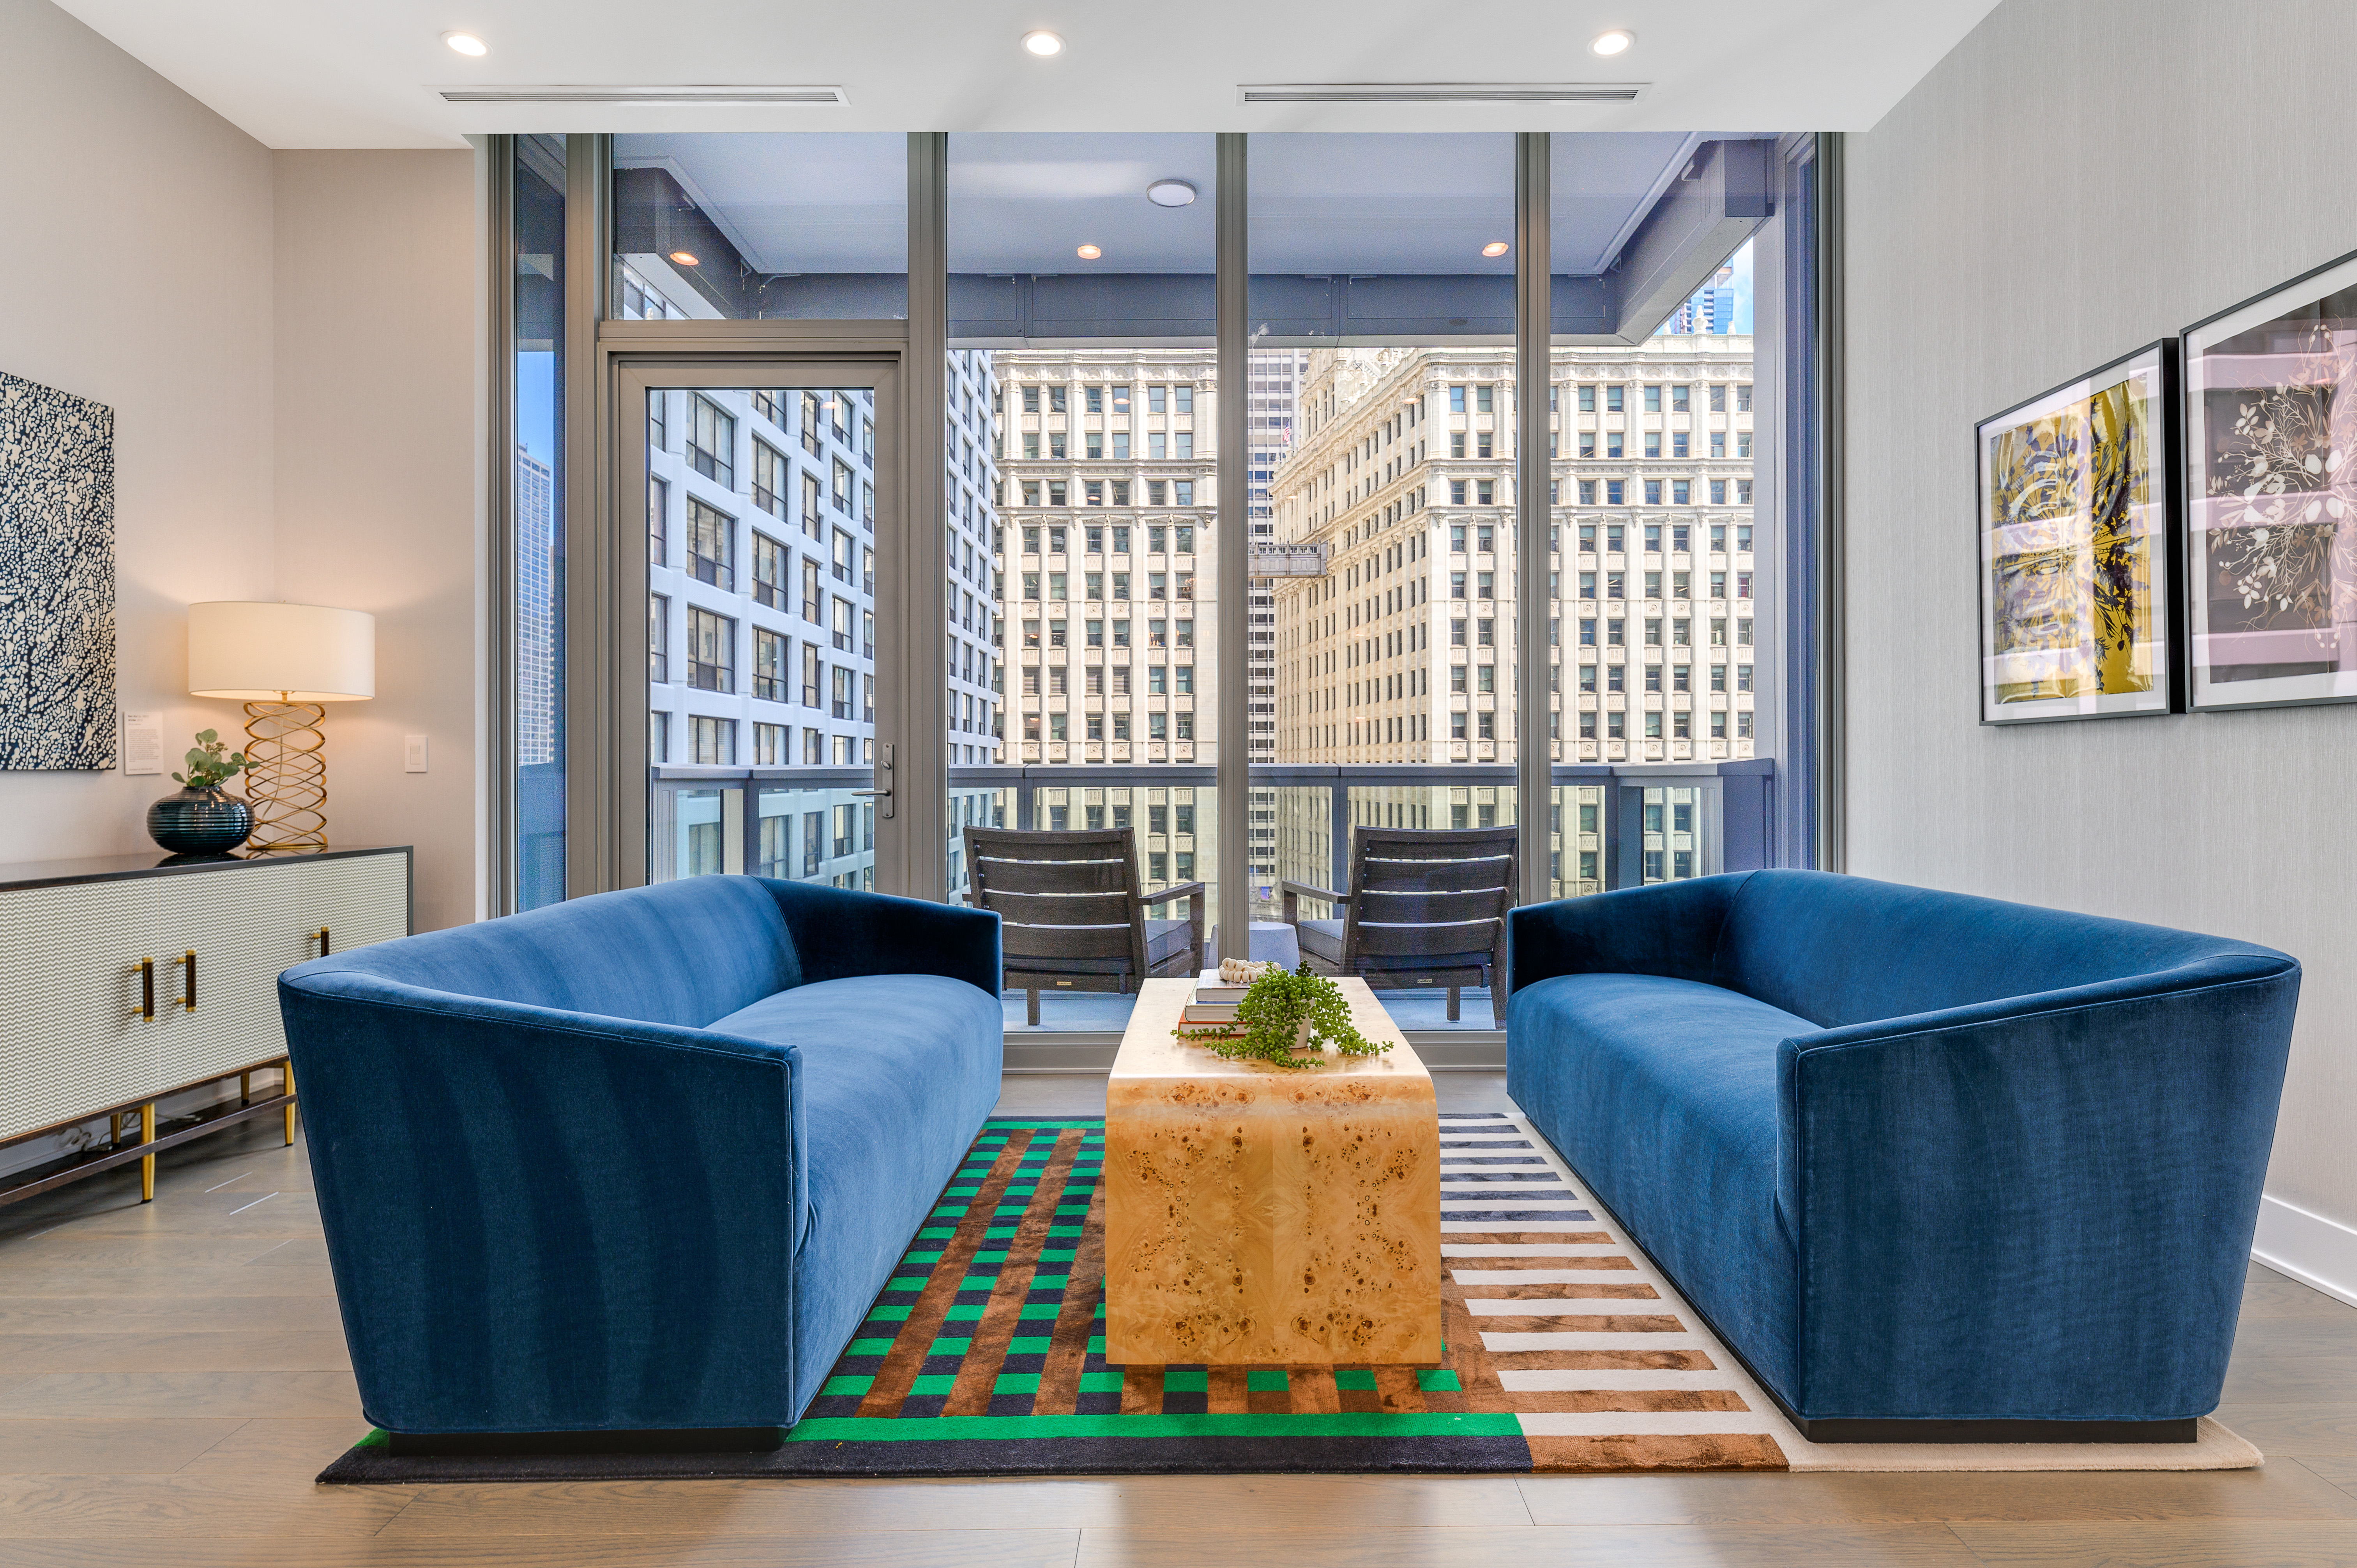 A living room with two blue couches on either side a wooden coffee table. The room connects to a balcony overlooking a cluster of taller buildings.